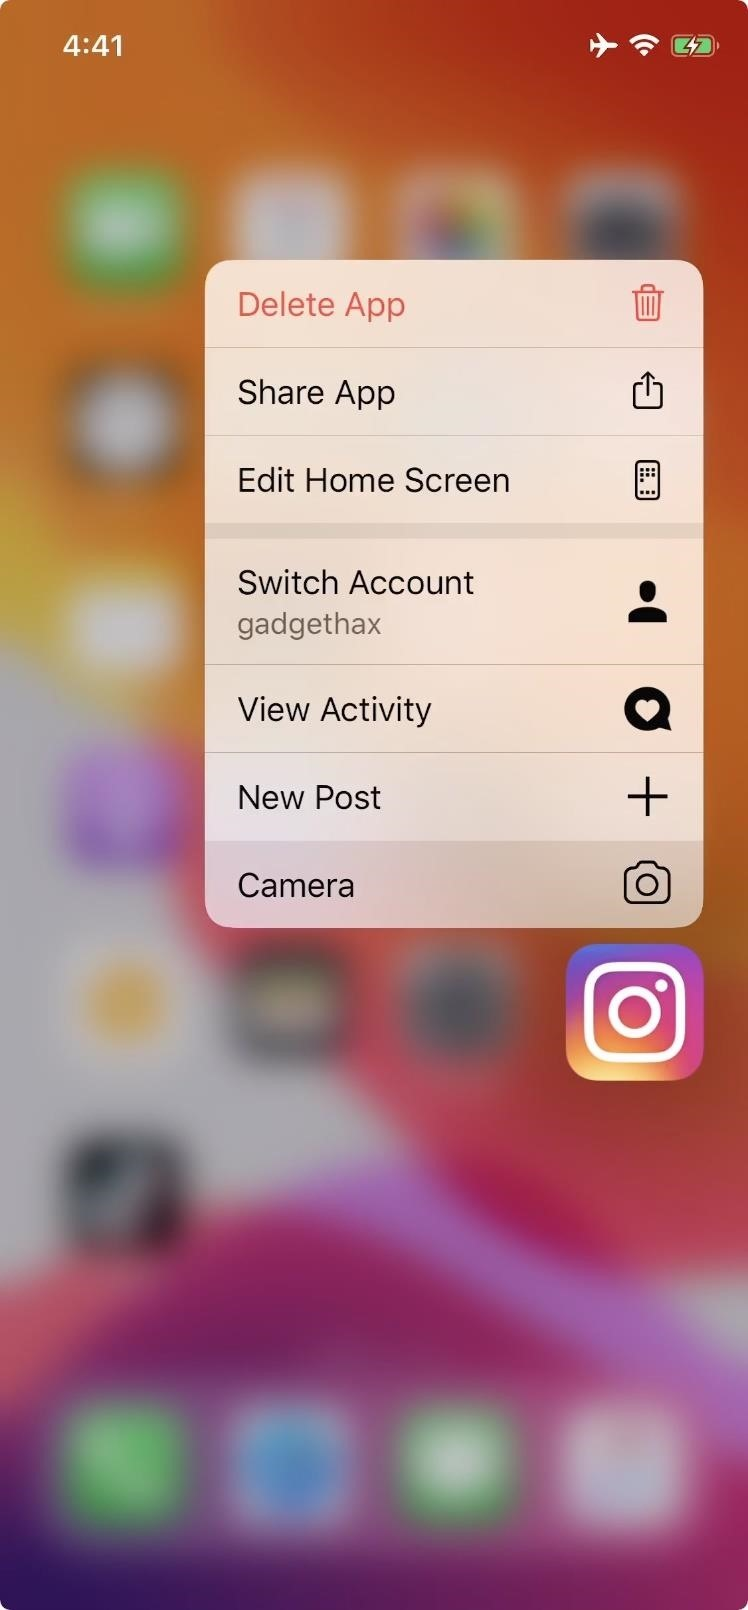 With this trick you can immediately record an Instagram story